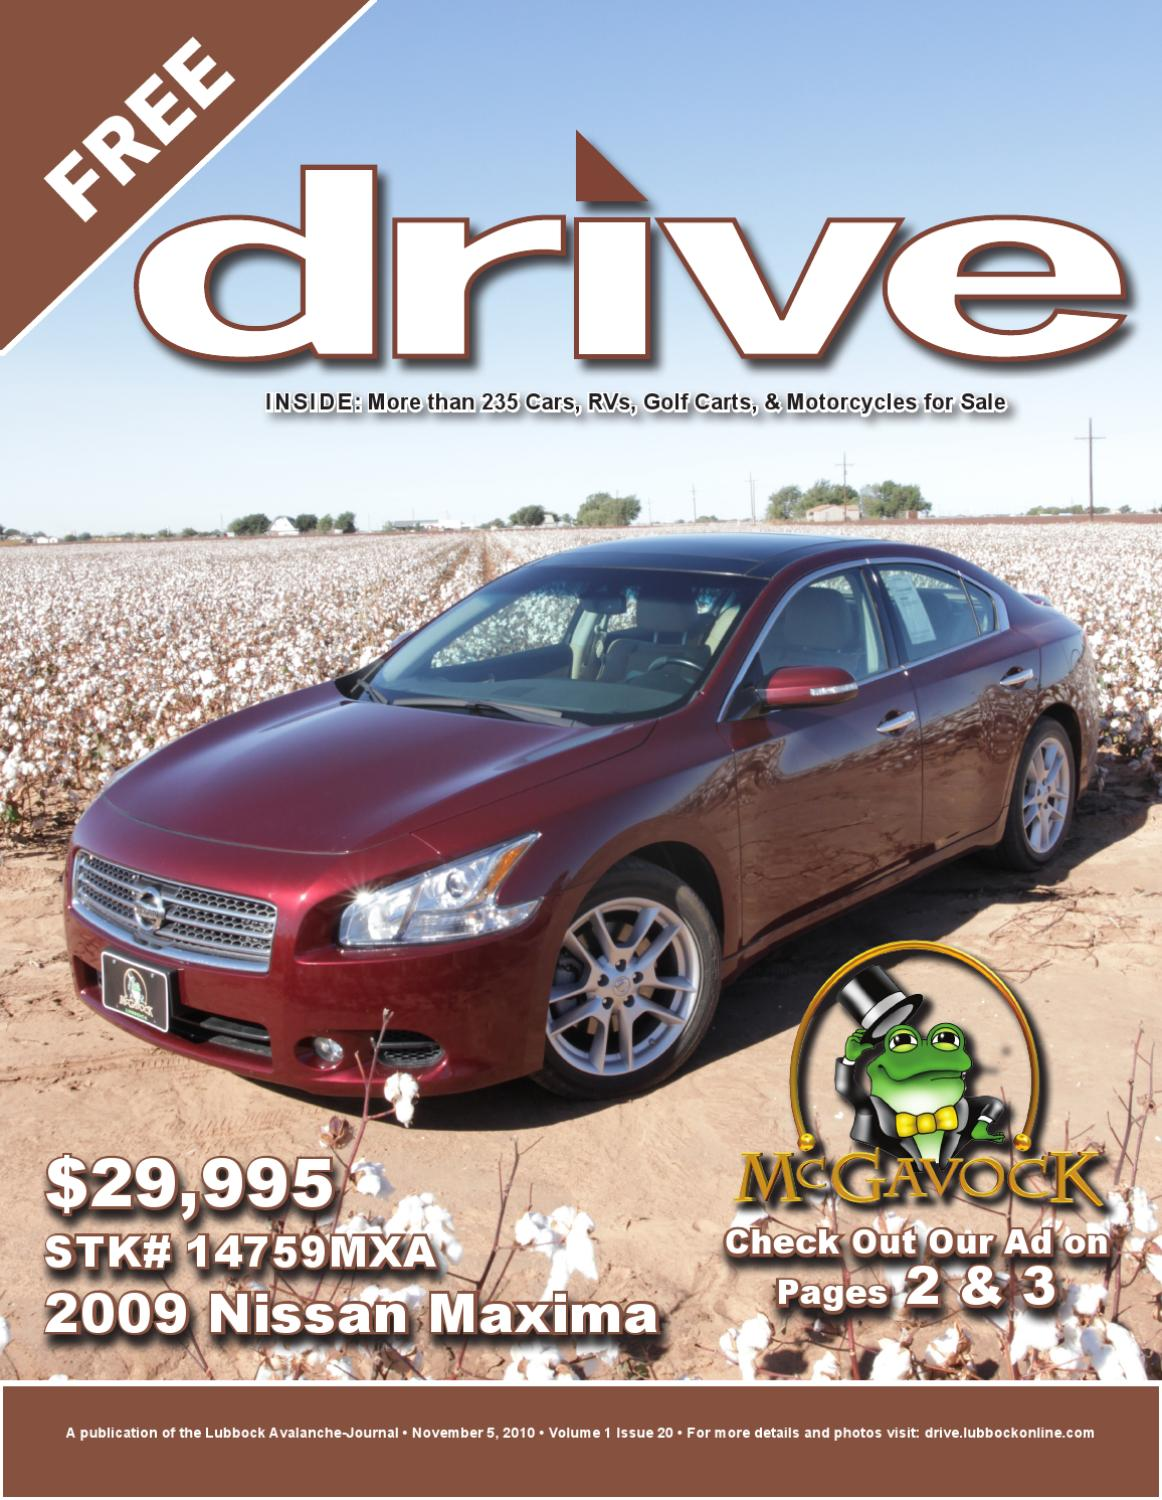 Drive Vol 1 Issue 2011 05 10 By Lubbock Avalanche Journal Issuu Buick Rendezvous Cxl 2002 Electric Seat Issues